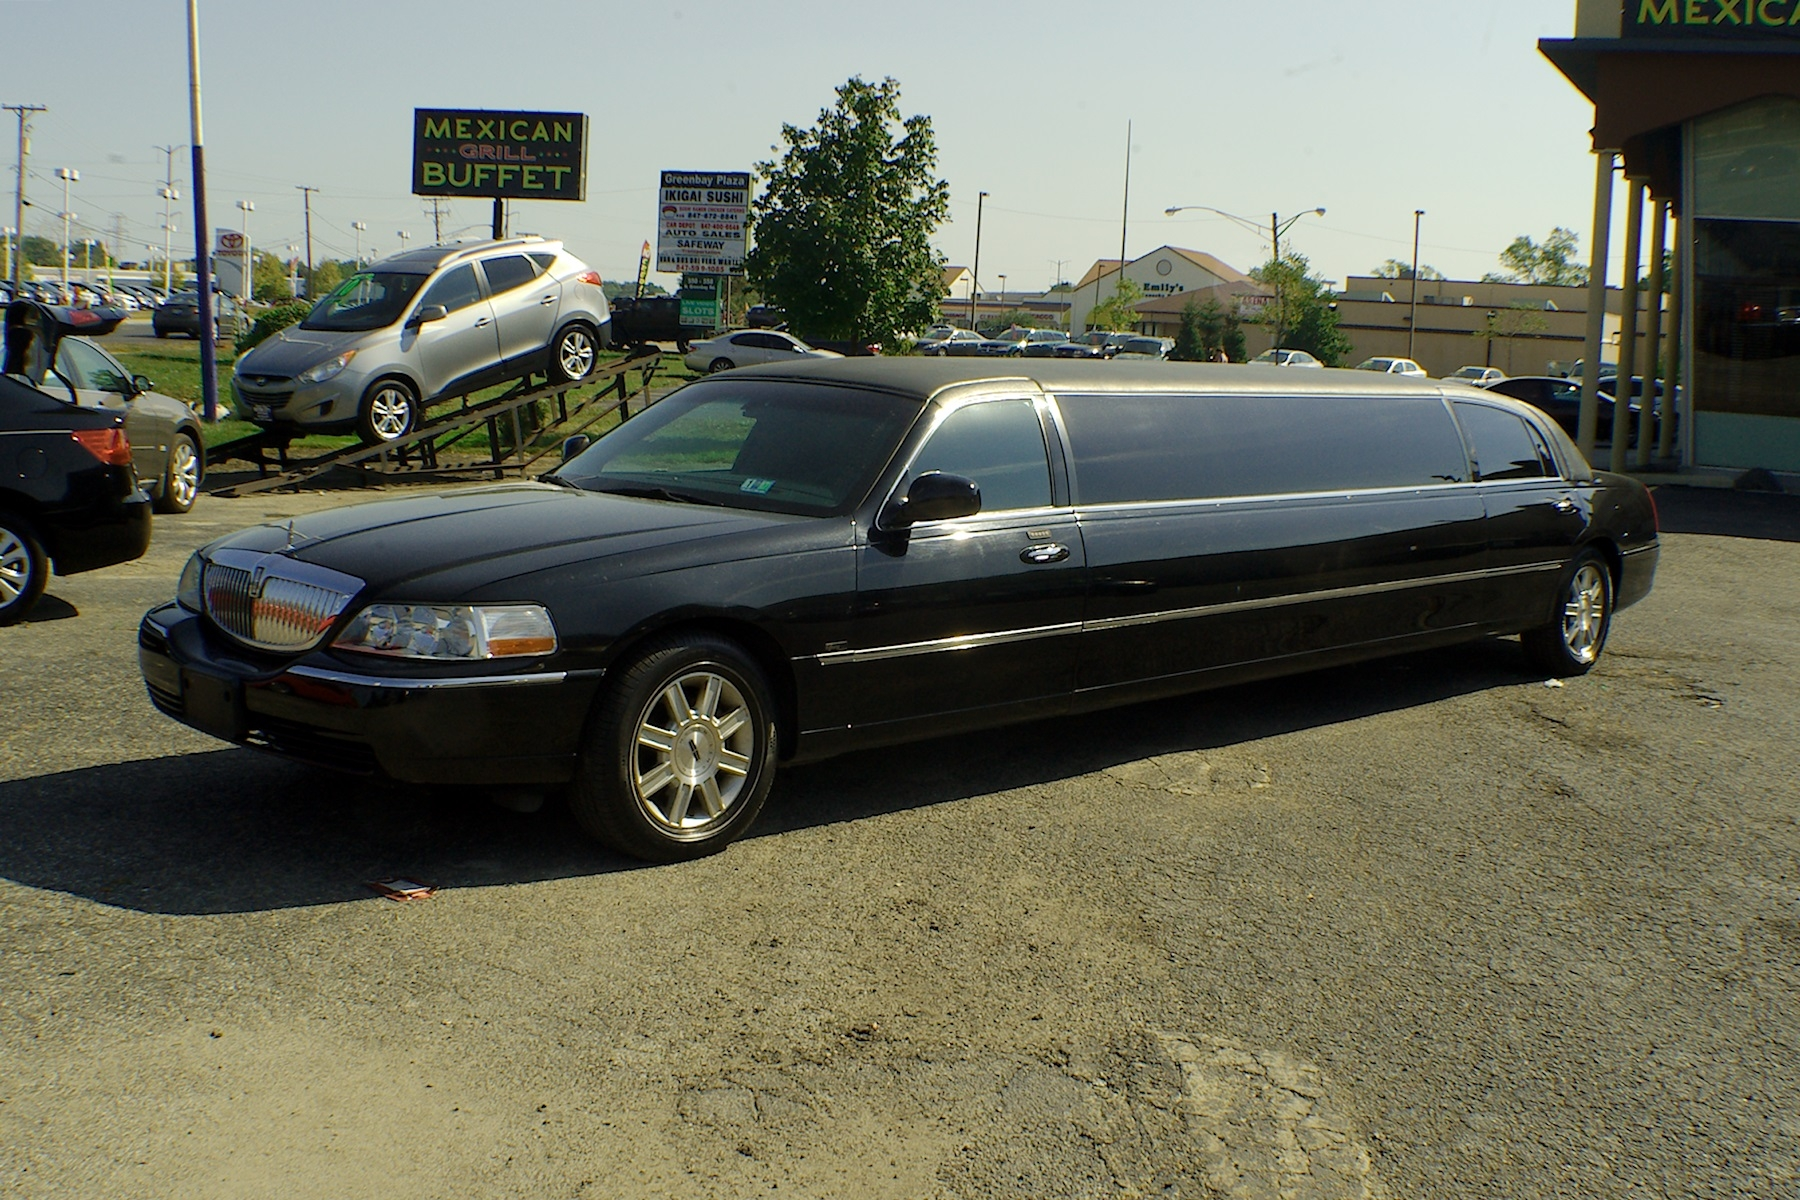 2007 Lincoln Town Car Stretch Limousine Used Car Sale Gurnee Kenosha Mchenry Chicago Illinois